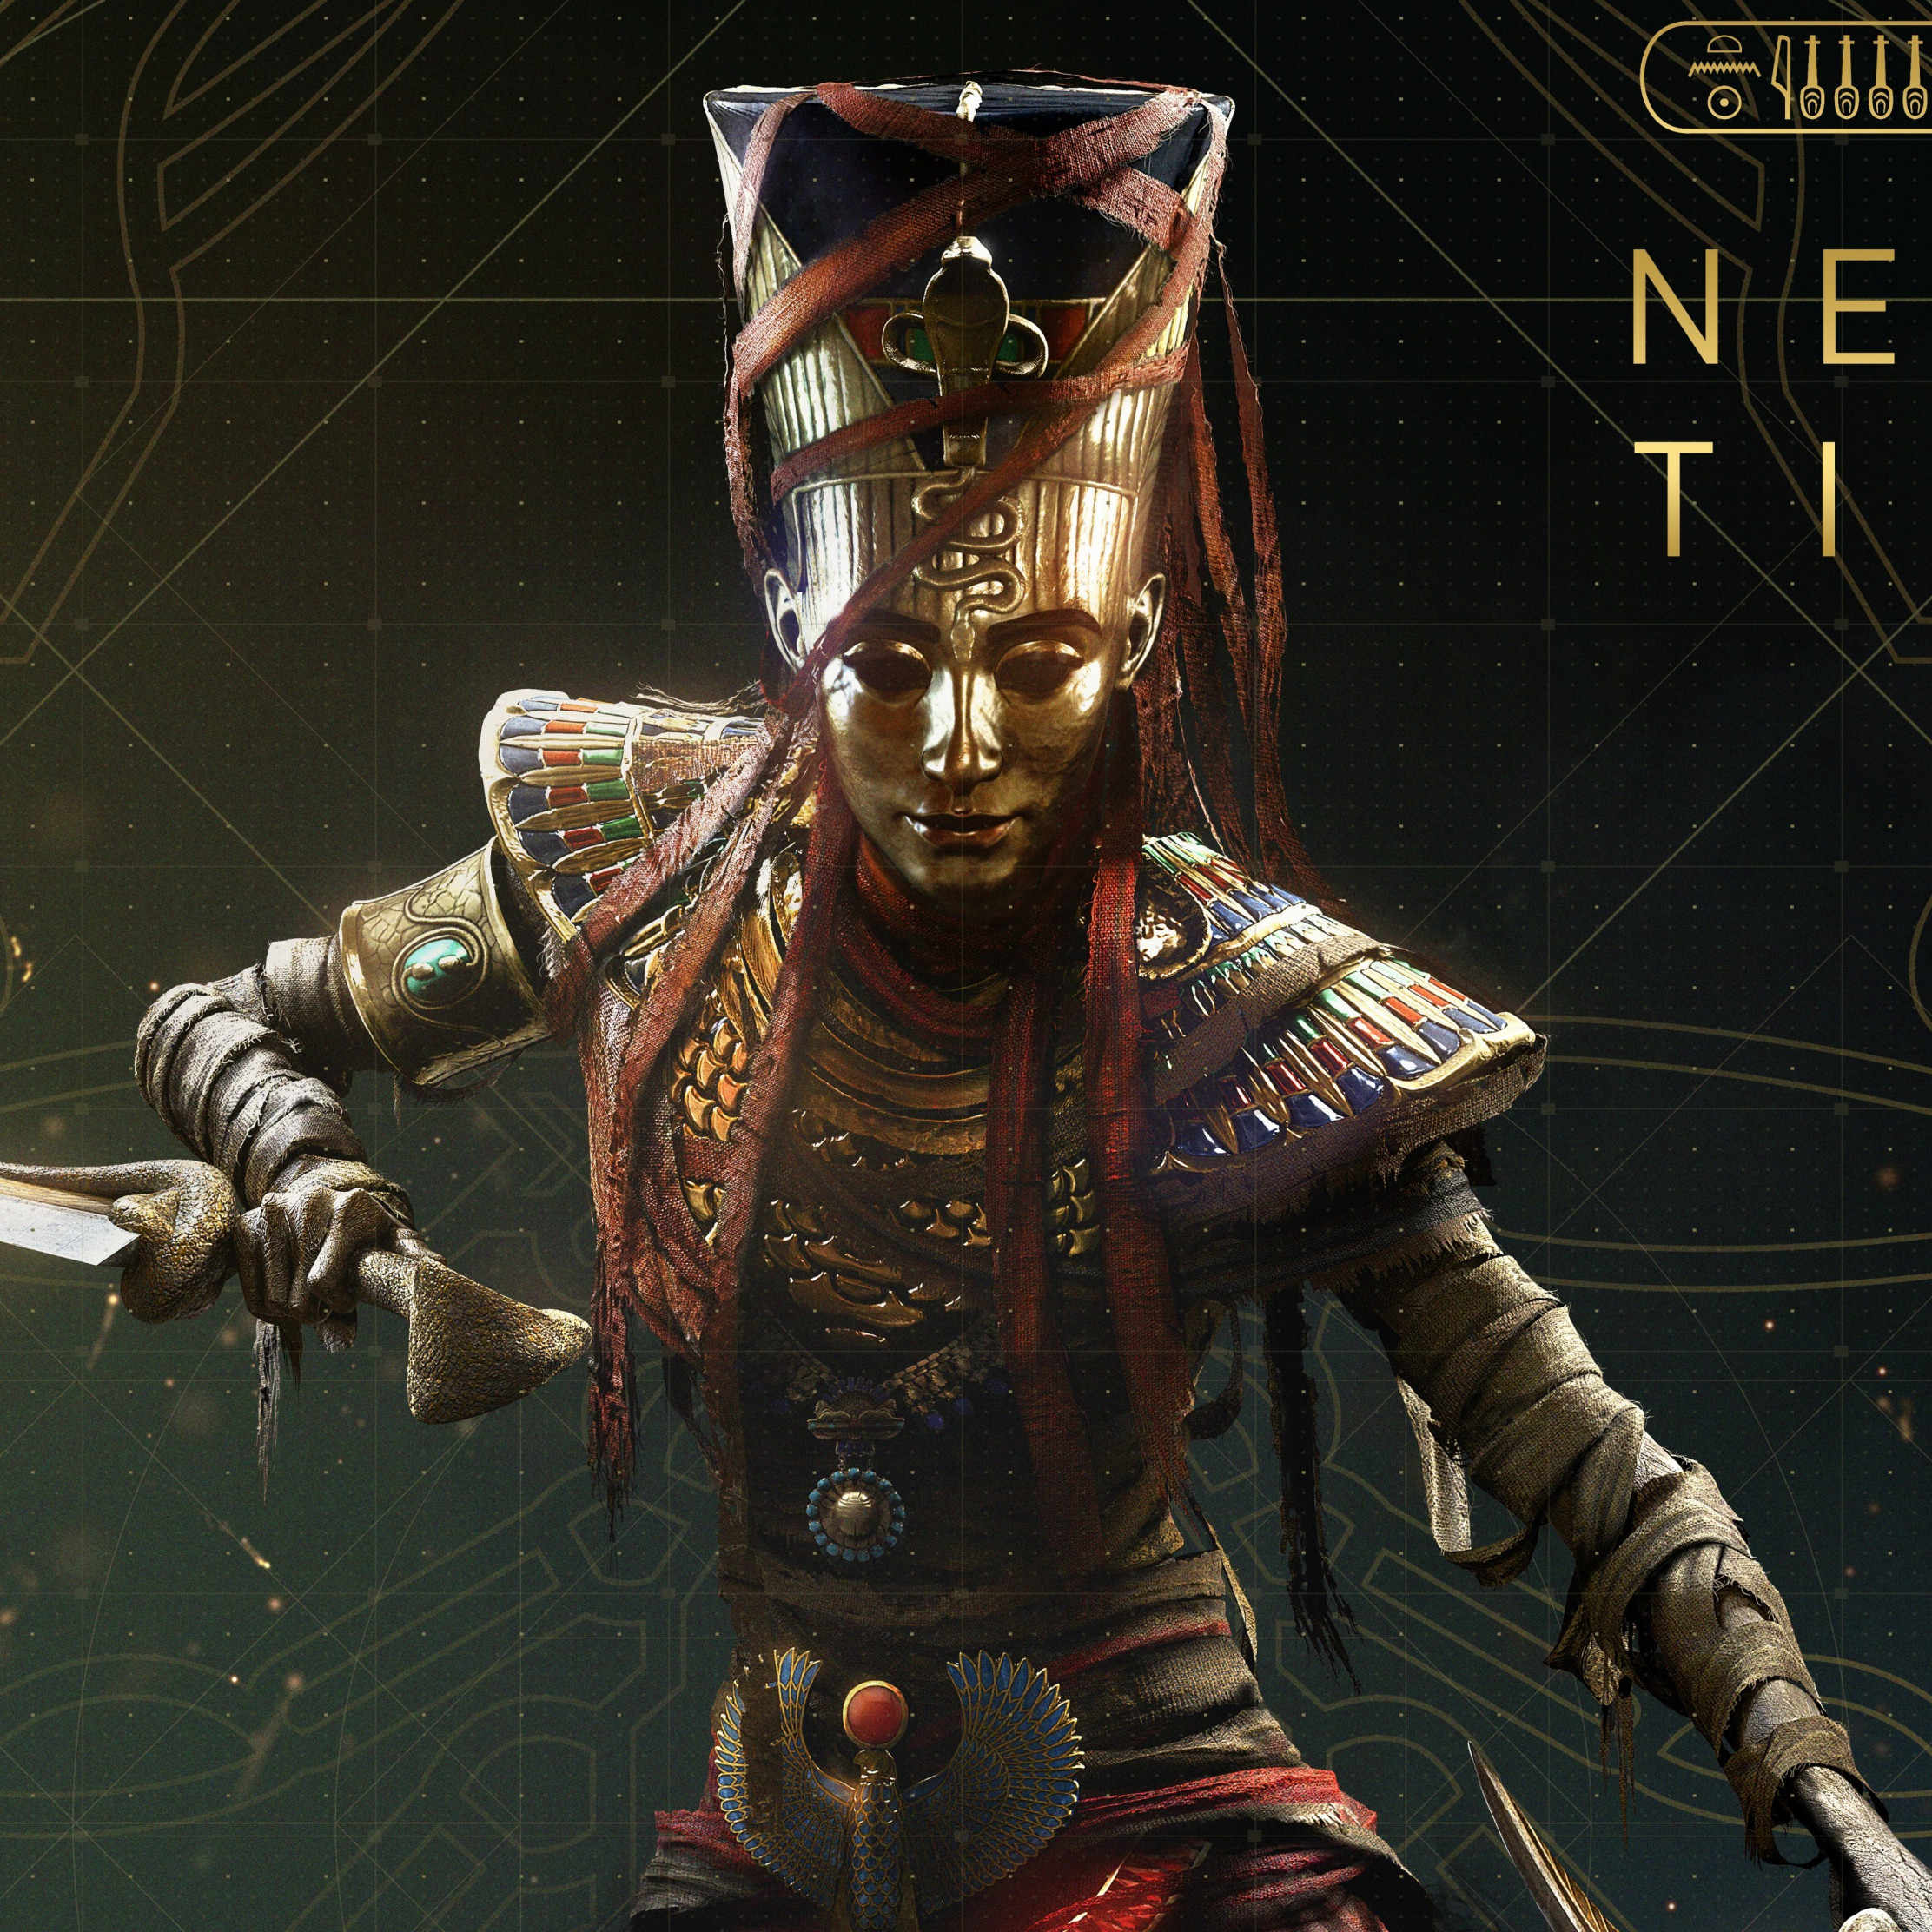 Download Wallpaper Nefertiti From Assassin S Creed Origins 2224x2224